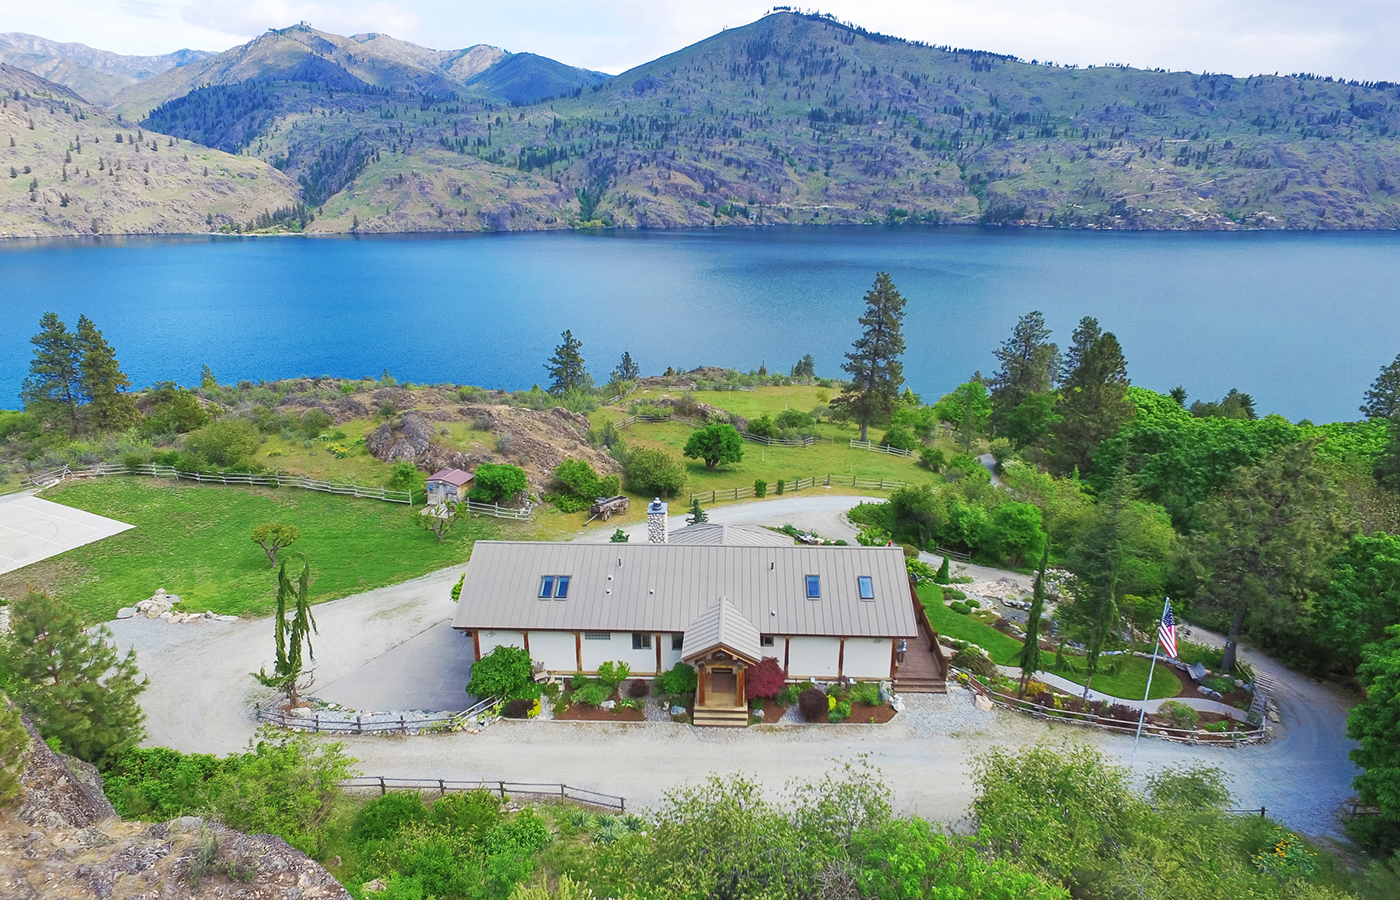 Private Chelan 180 ~ Lake Chelan, Washington